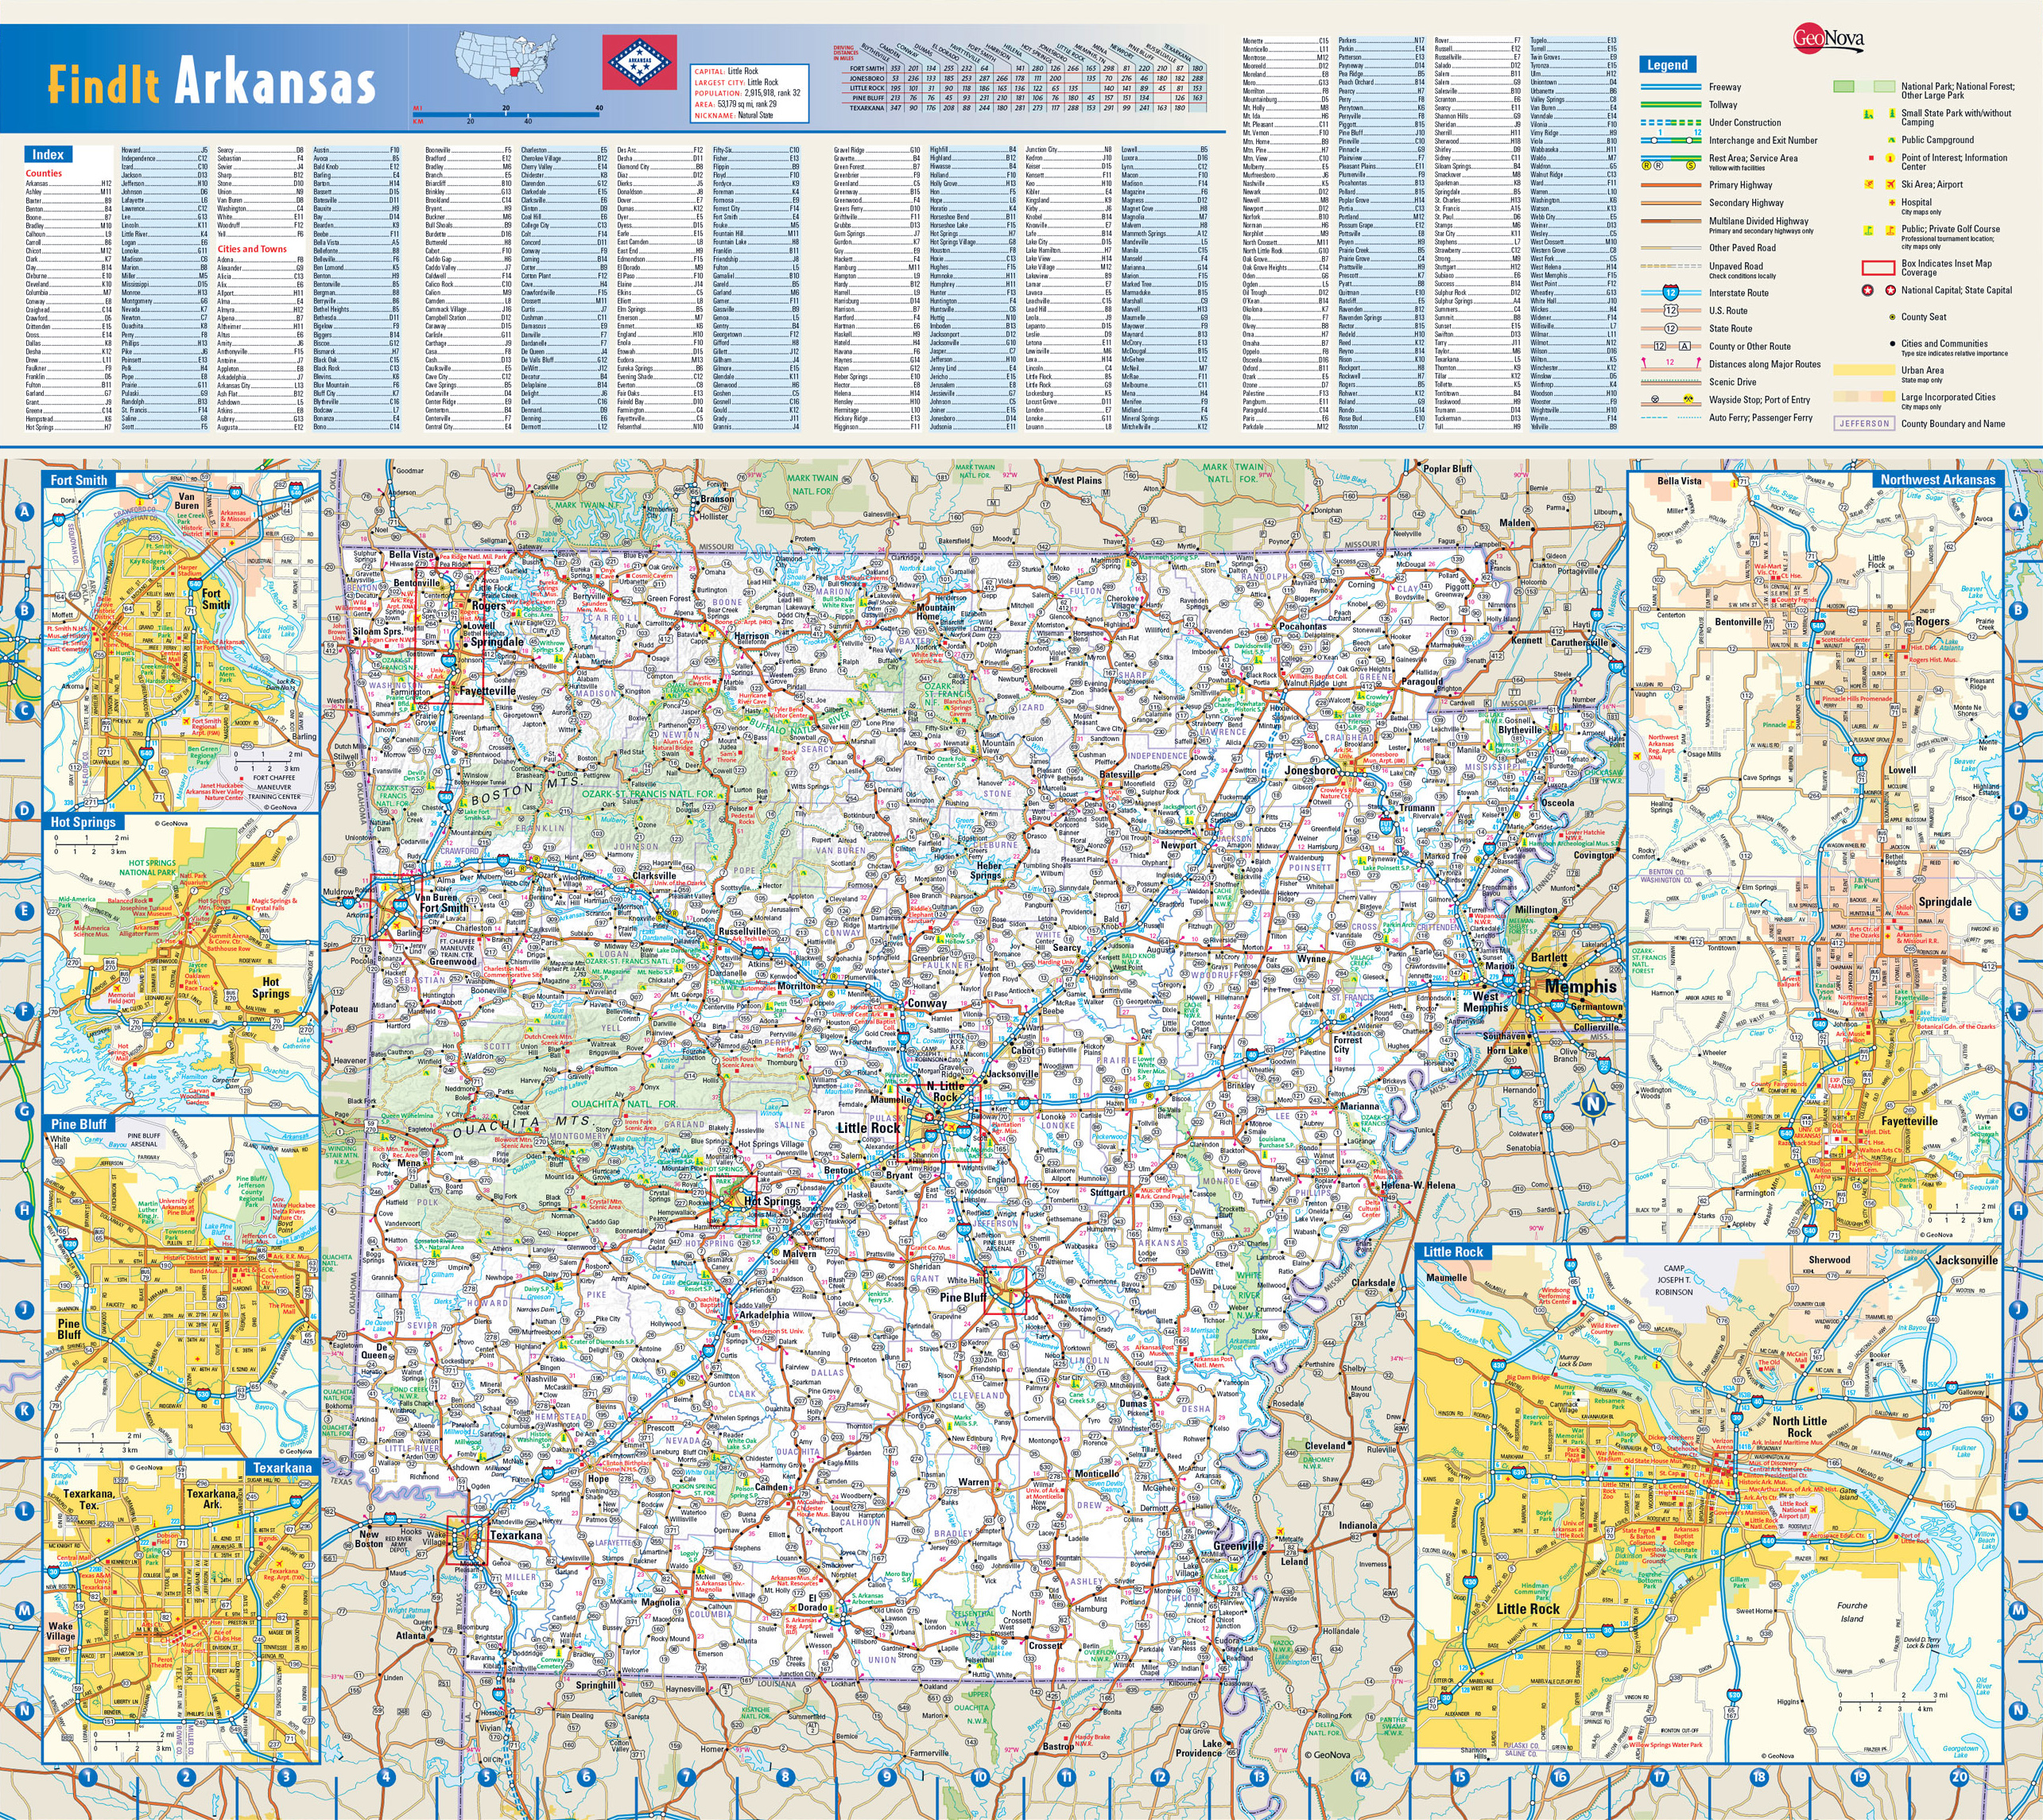 Detailed Roads And Highways Map Of Arkansas State With National - State map of arkansas with cities